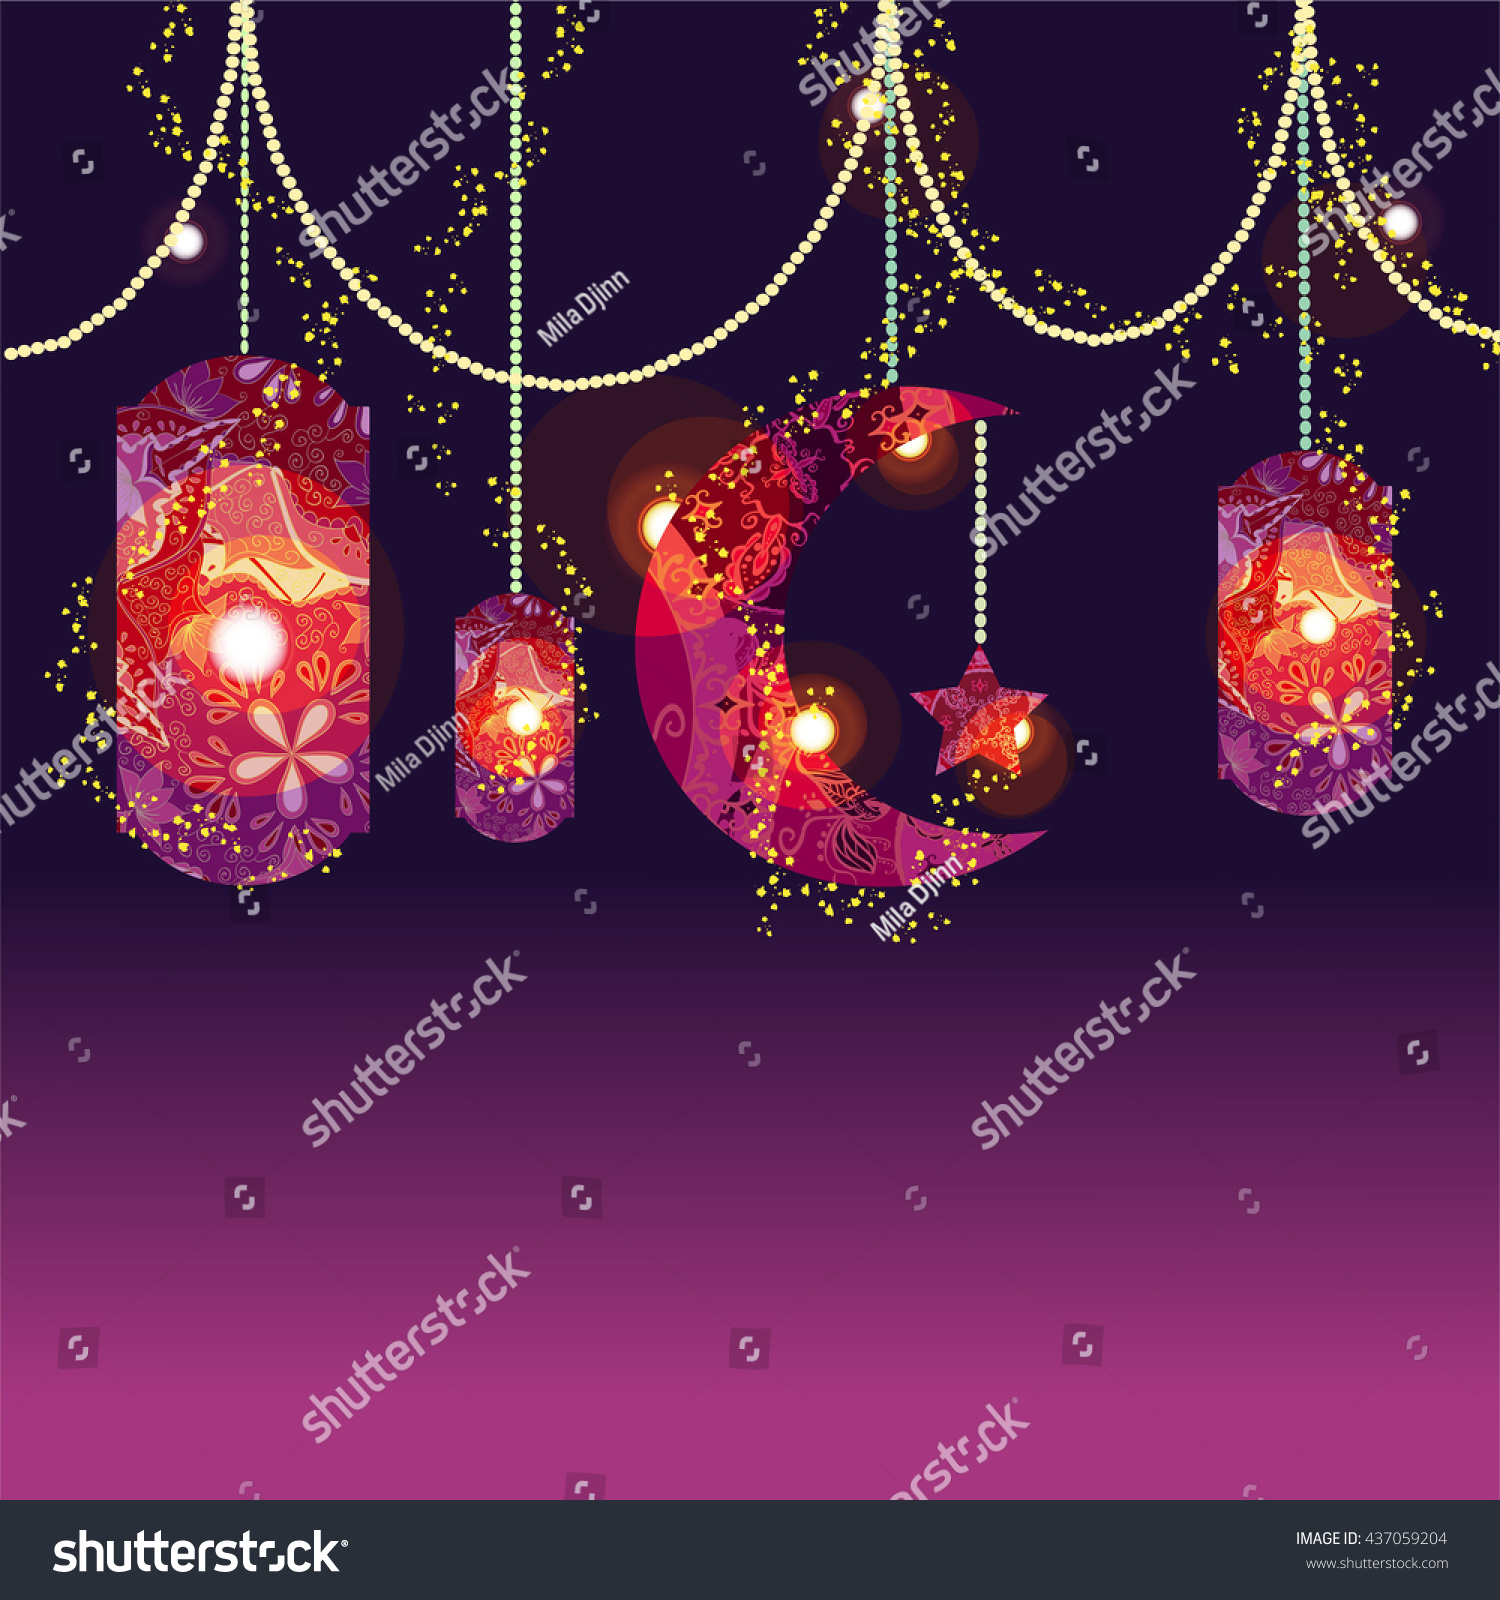 Simple Eid Mubarak Eid Al-Fitr Decorations - stock-vector-muslim-festival-eid-al-fitr-eid-mubarak-and-ramadan-concept-with-decorated-moon-and-star-vector-437059204  Image_27219 .jpg